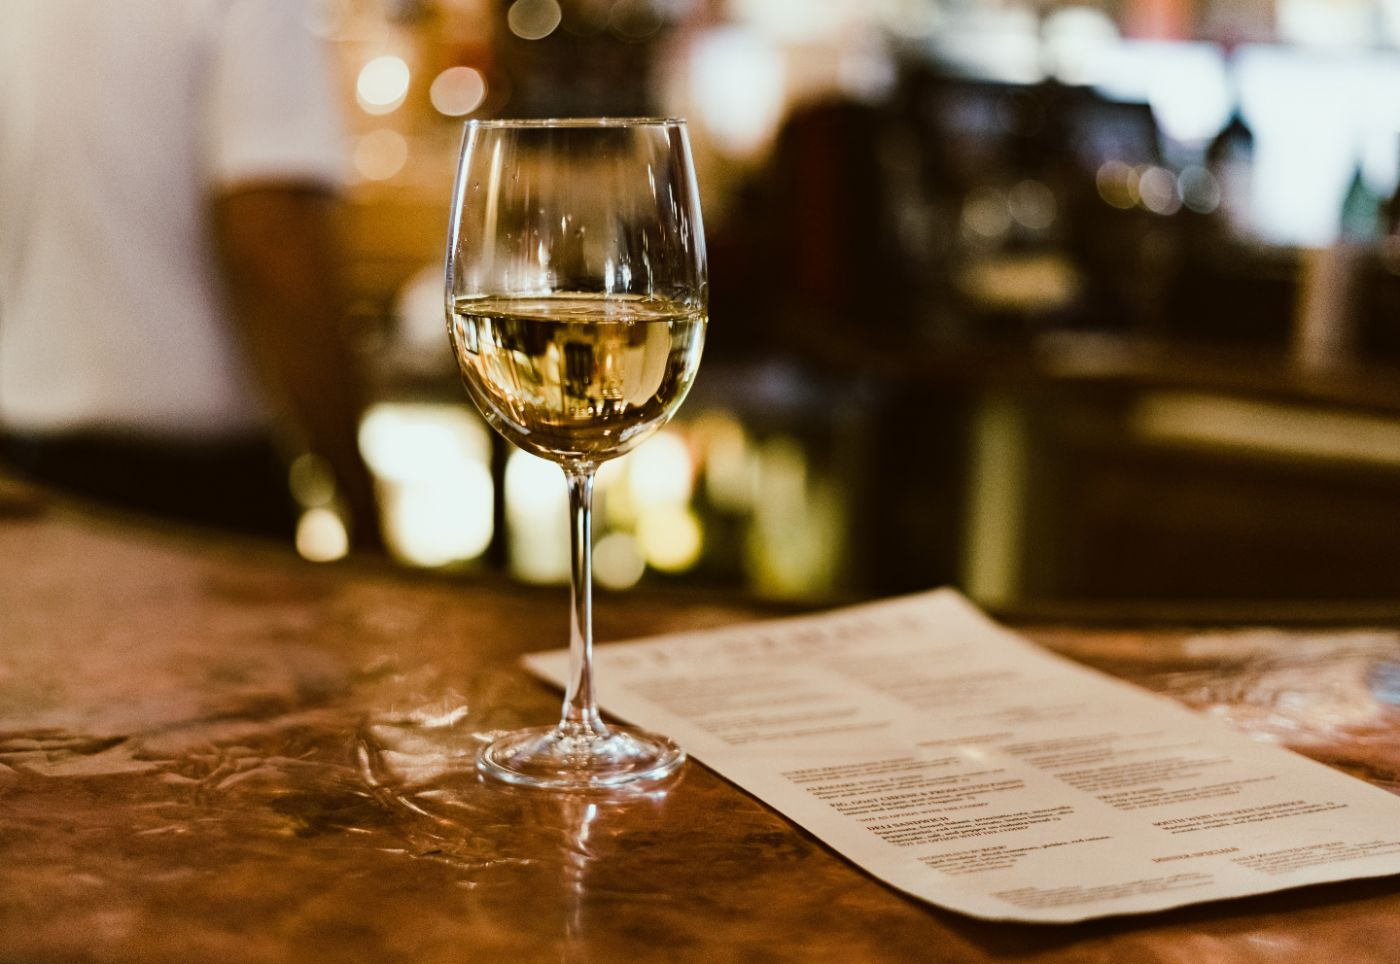 Tips to order wine in Italy